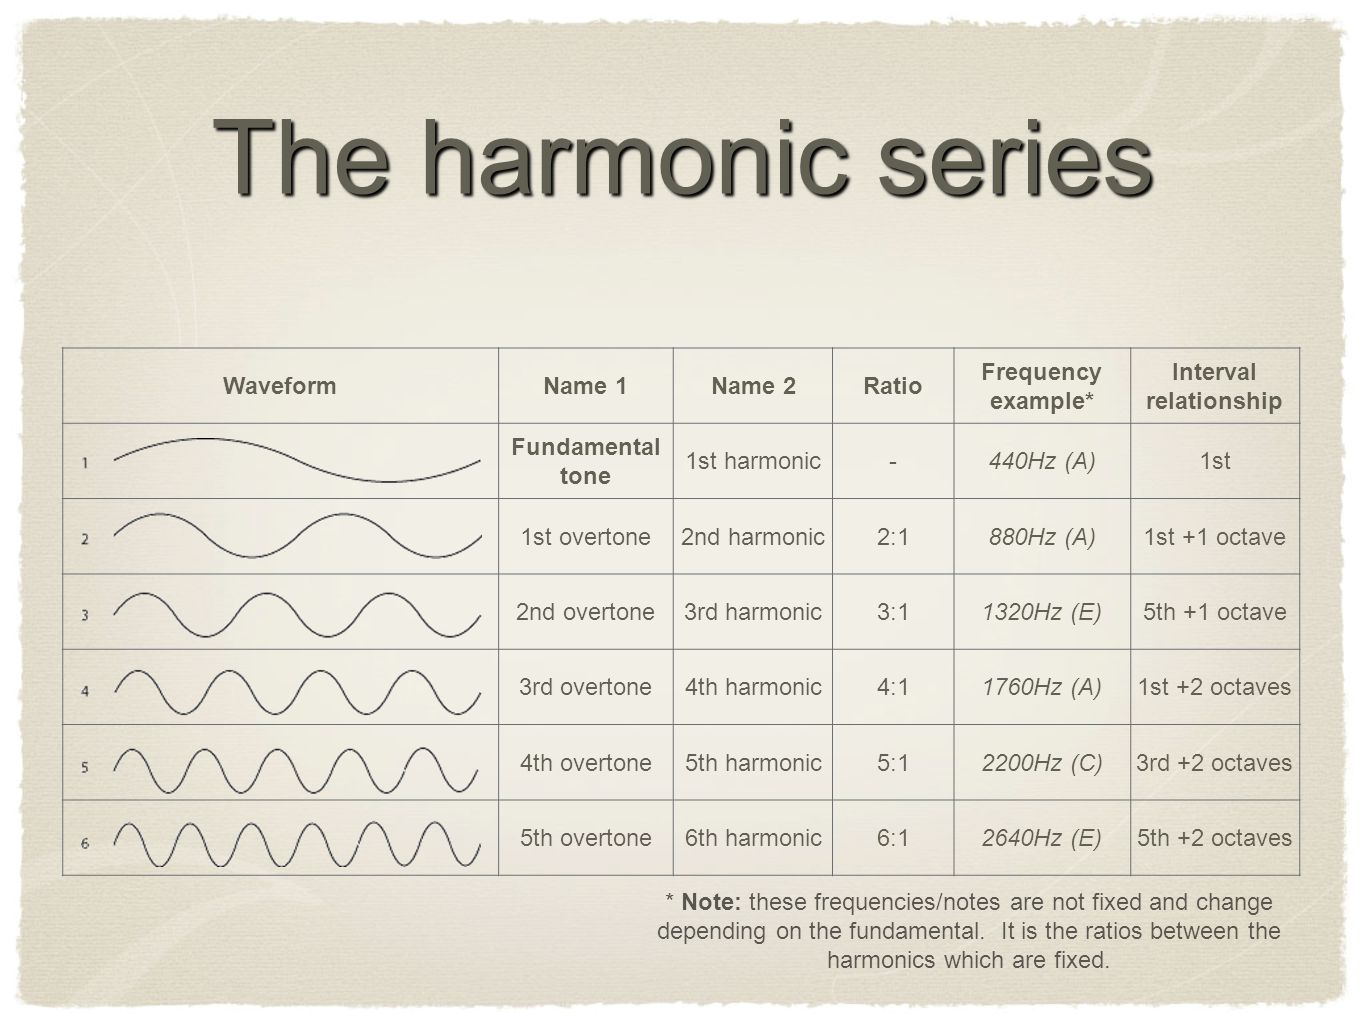 WaveformName 1Name 2Ratio Frequency example* Interval relationship Fundamental tone 1st harmonic-440Hz (A)1st 1st overtone2nd harmonic2:1880Hz (A)1st +1 octave 2nd overtone3rd harmonic3:11320Hz (E)5th +1 octave 3rd overtone4th harmonic4:11760Hz (A)1st +2 octaves 4th overtone5th harmonic5:12200Hz (C)3rd +2 octaves 5th overtone6th harmonic6:12640Hz (E)5th +2 octaves The harmonic series * Note: these frequencies/notes are not fixed and change depending on the fundamental.